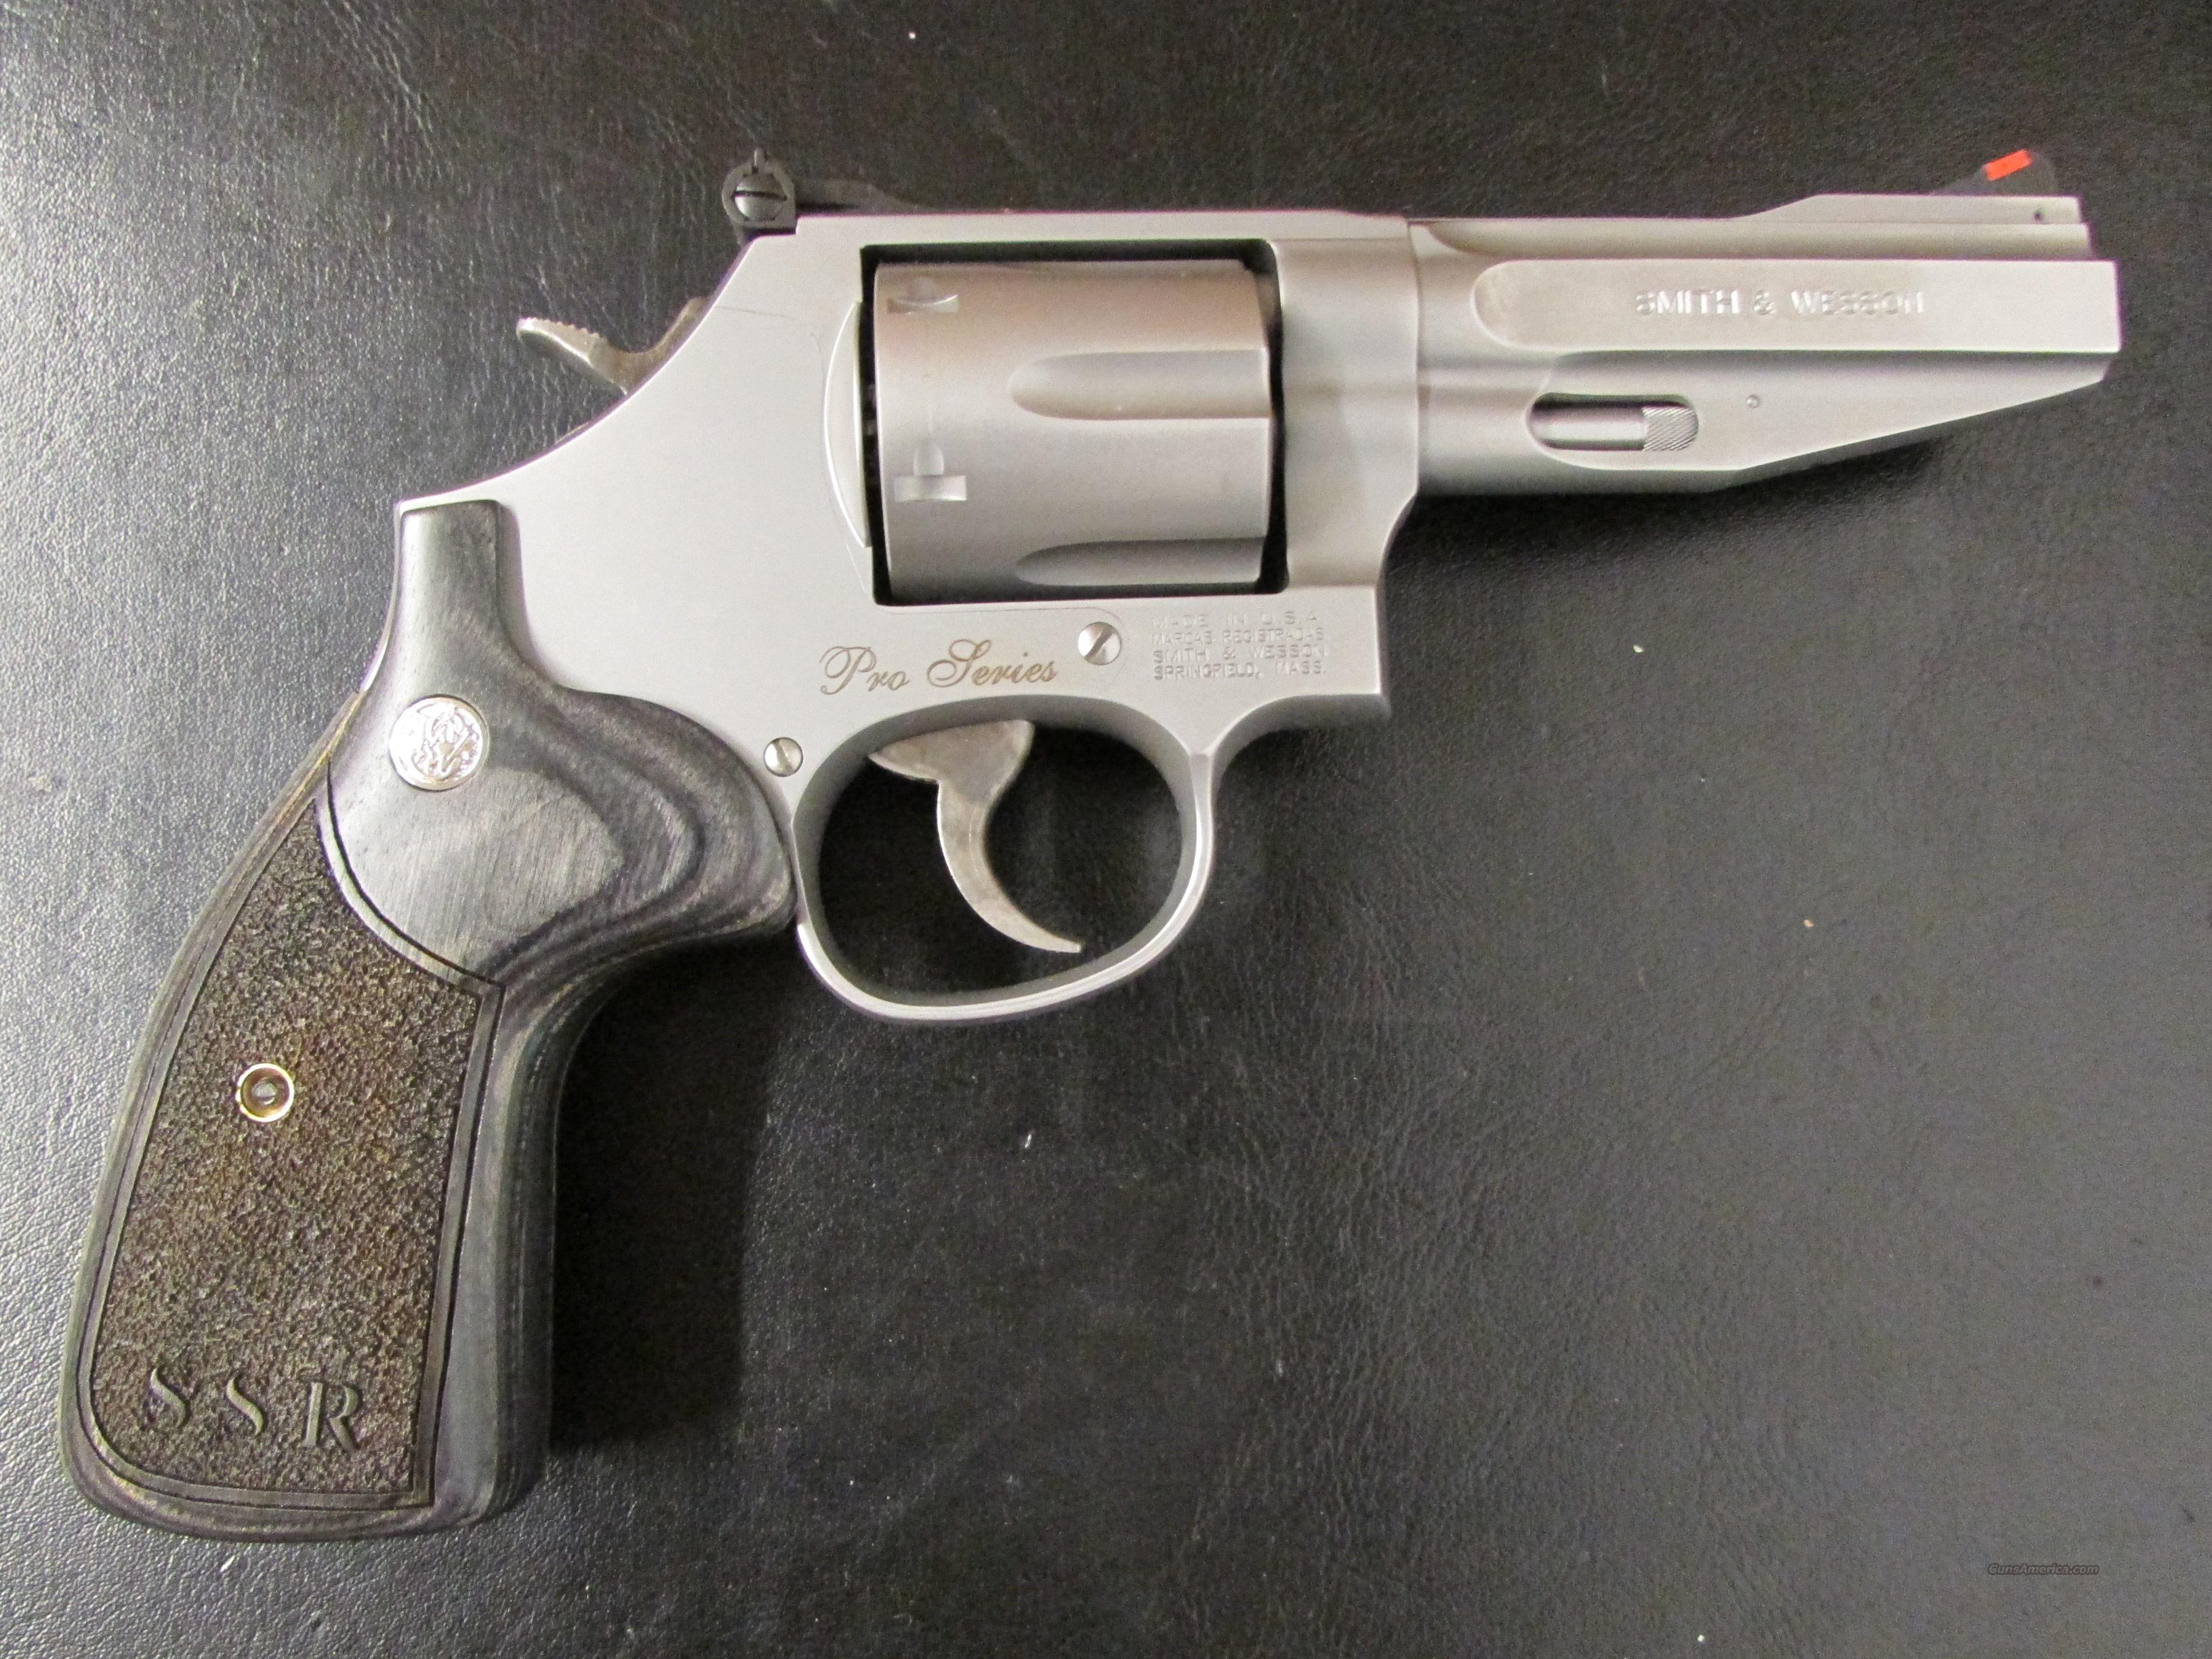 Smith Wesson Model 686 SSR Pro Series 357 Magnum Guns Pistols